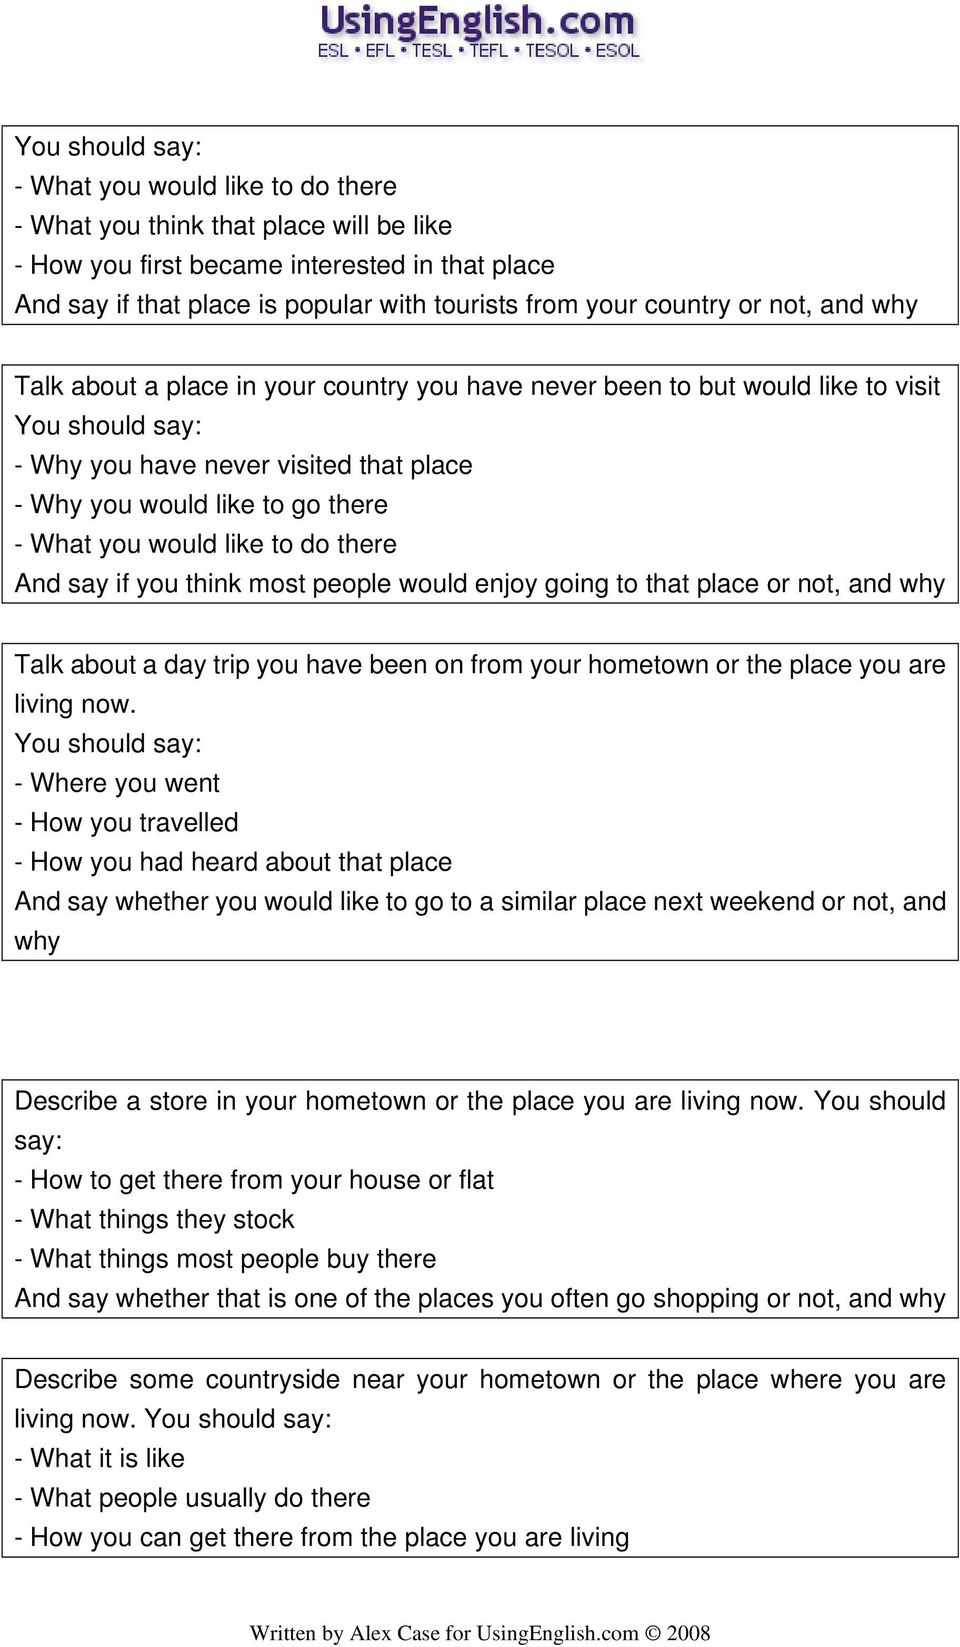 describe a country you would like to visit